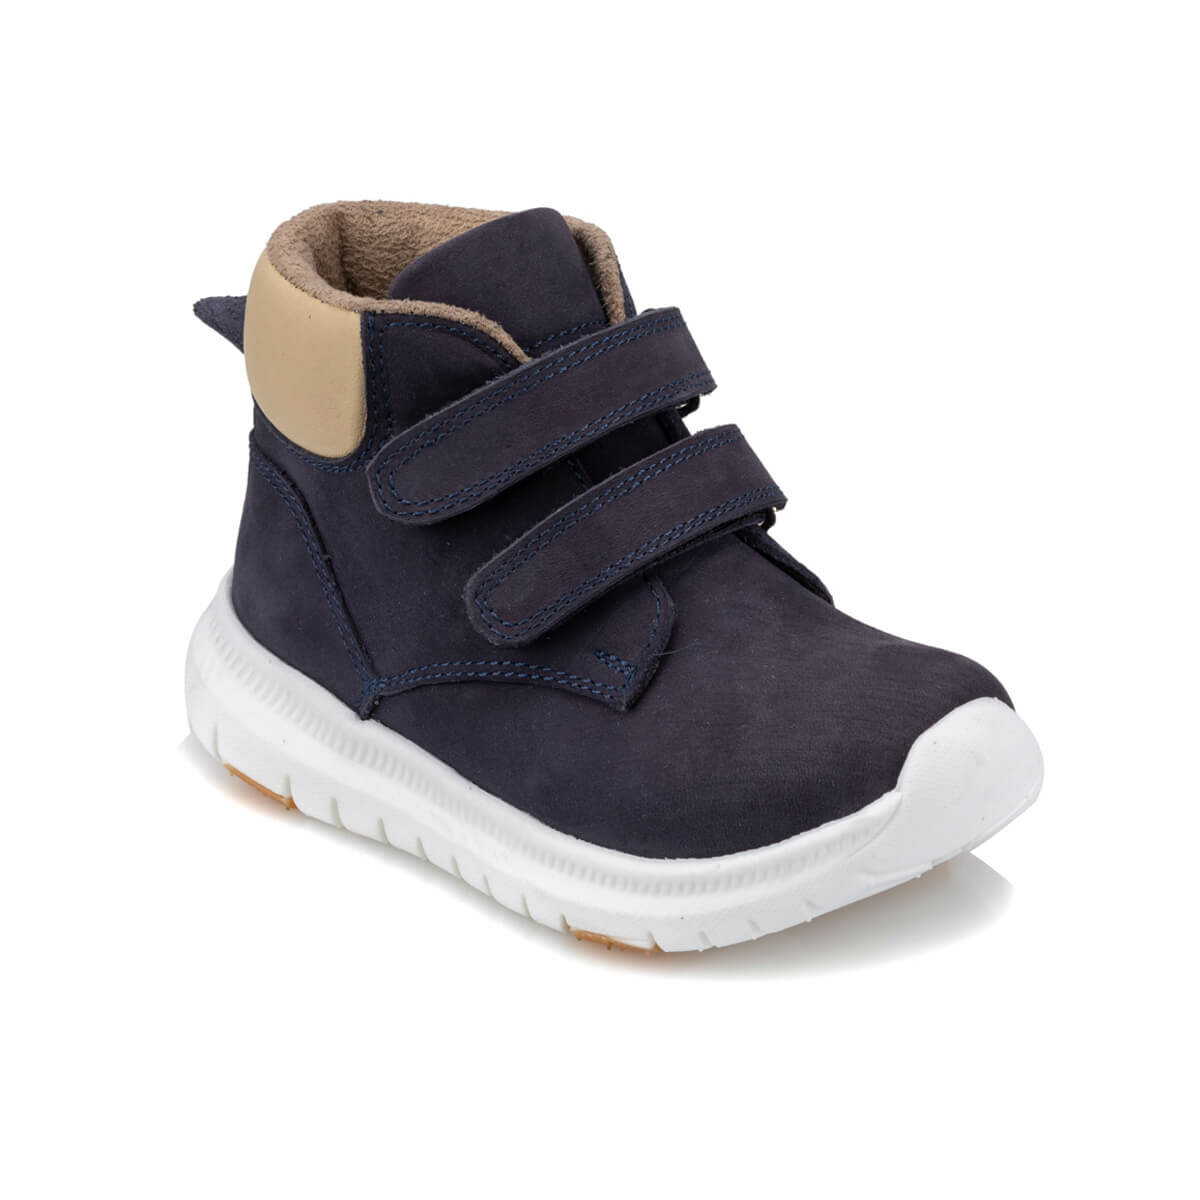 FLO 92.511731.B Navy Blue Male Child Boots Polaris